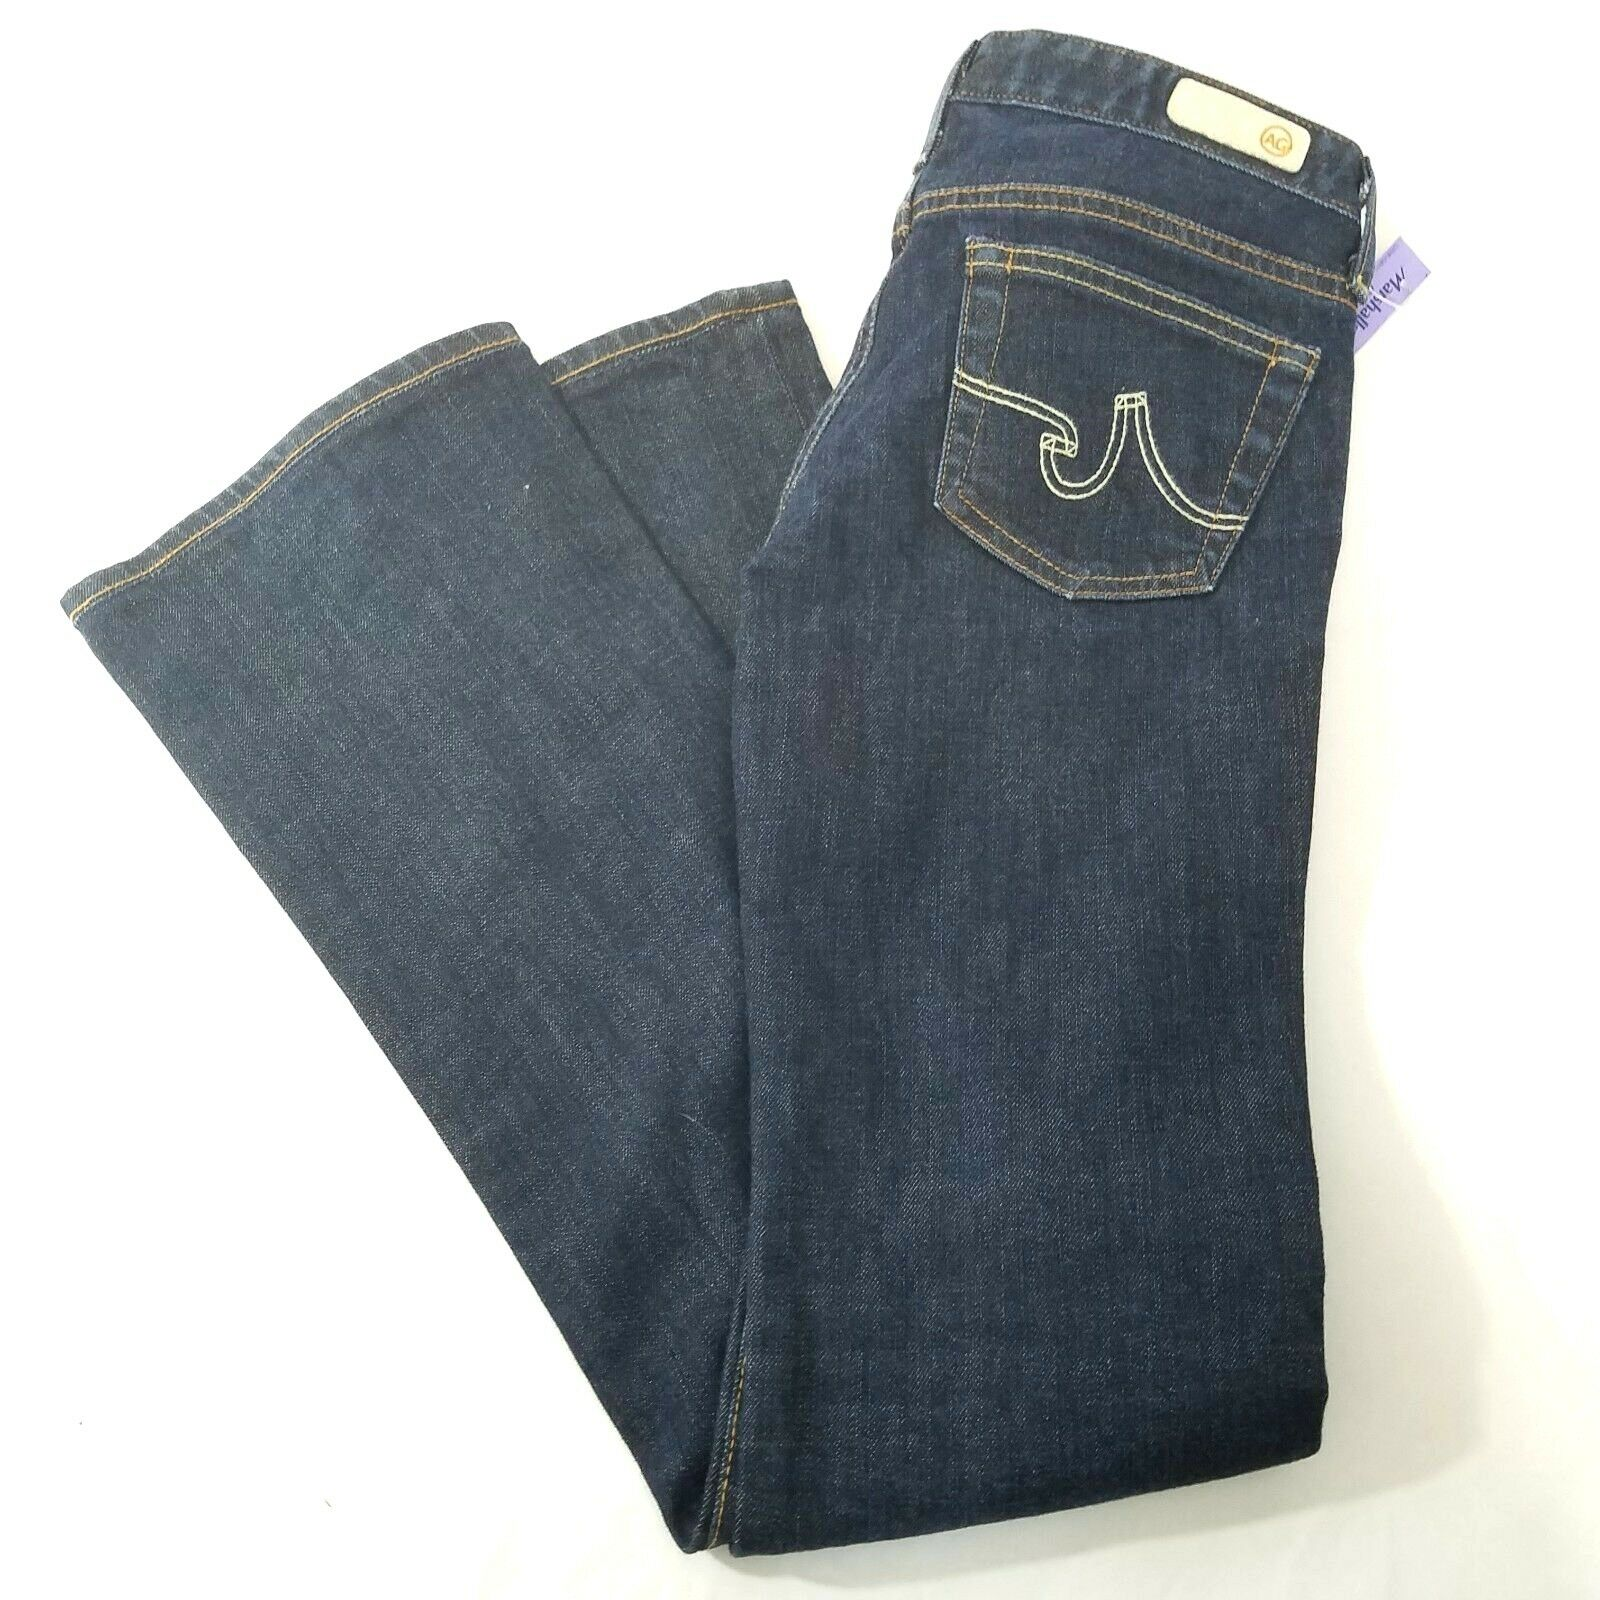 NWT AG Adriano goldschmied The Angel Bootcut Dark Jeans Size 25